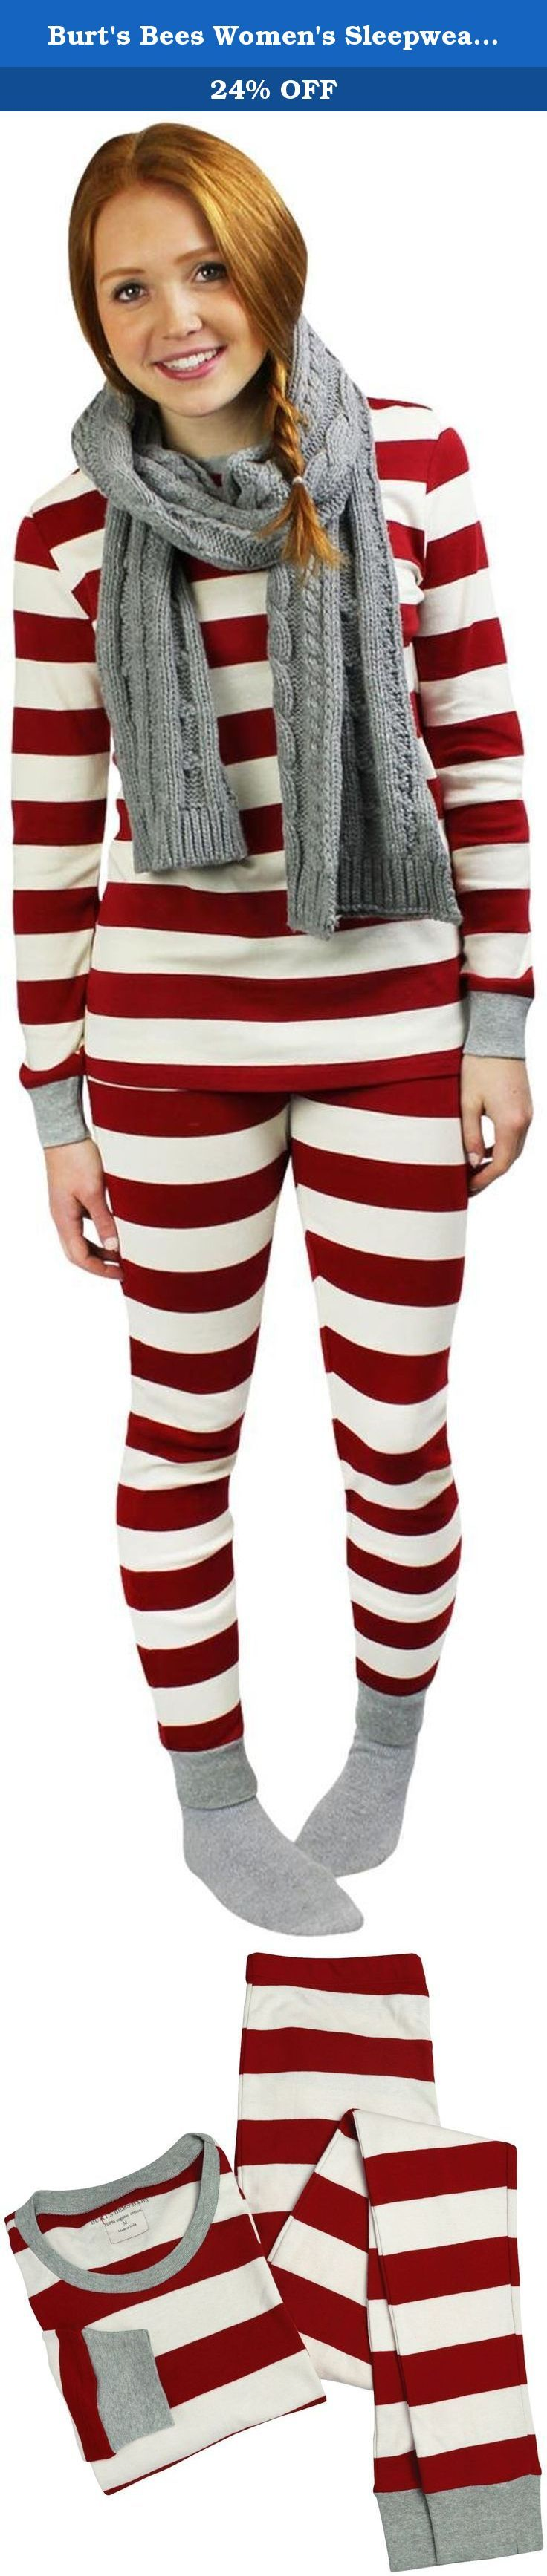 Burt's Bees Women's Sleepwear Women's Adult Cotton Pajama Set, Cranberry Rugby Stripe, X-Small. Our rugby stripe long sleeve tee and pant set is too sweet pass up, it has scallop detailing, ribbed cuffs and an ombre Bee patch on the back making this 100 percent organic cotton set as cute as it is comfy.